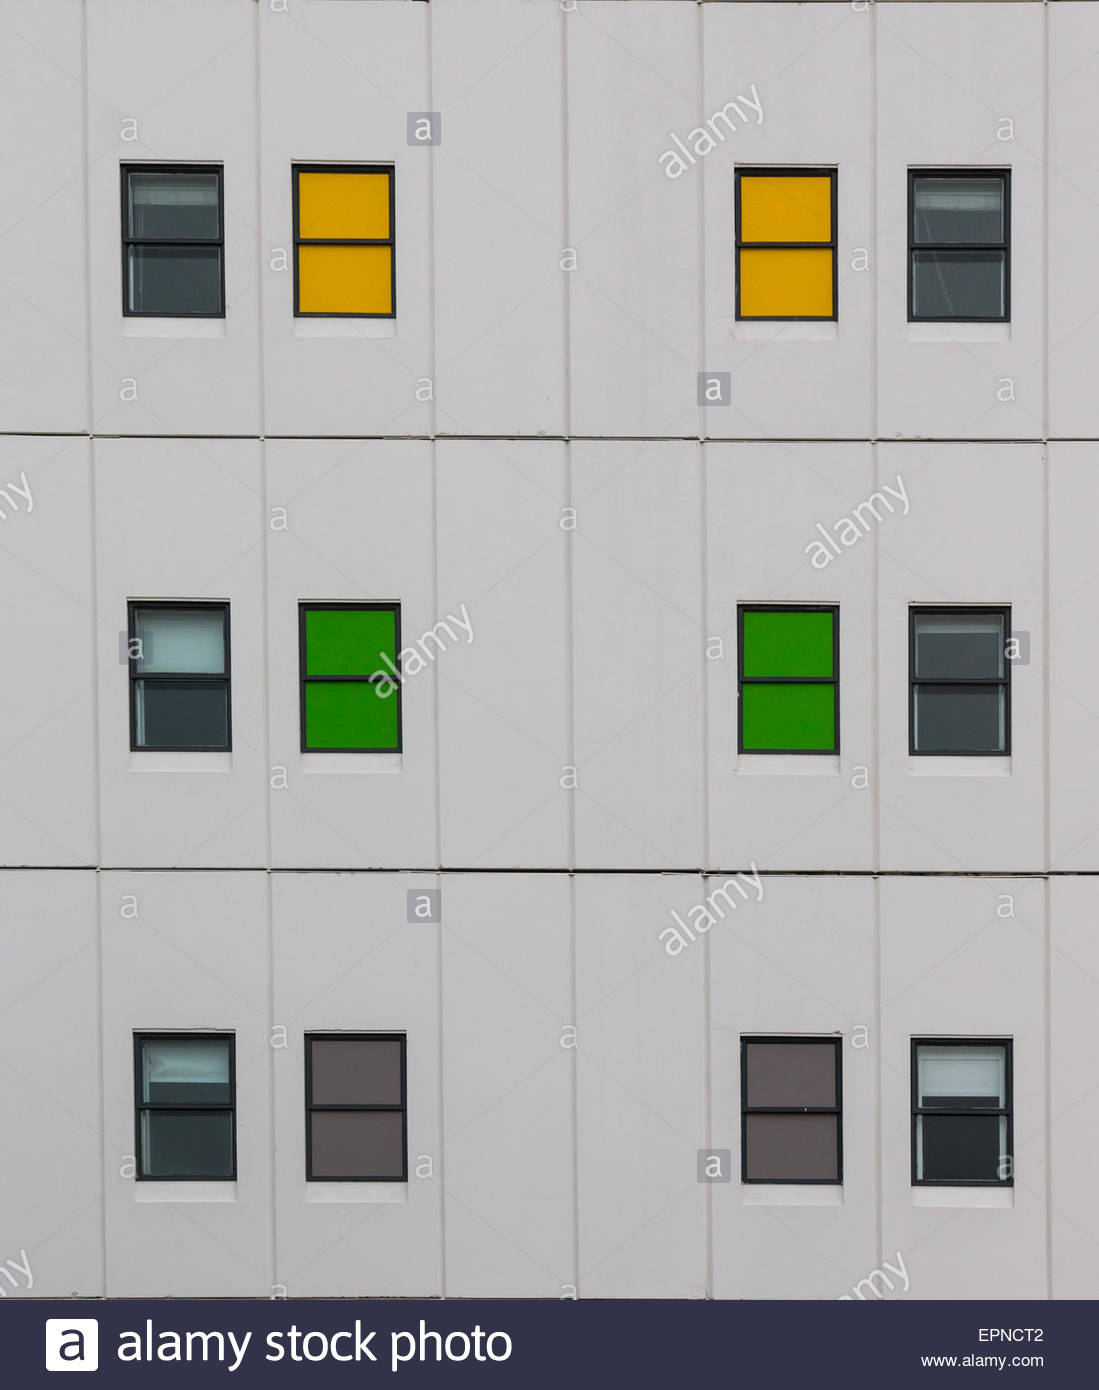 Colorful windows of a multistory building - Stock Image